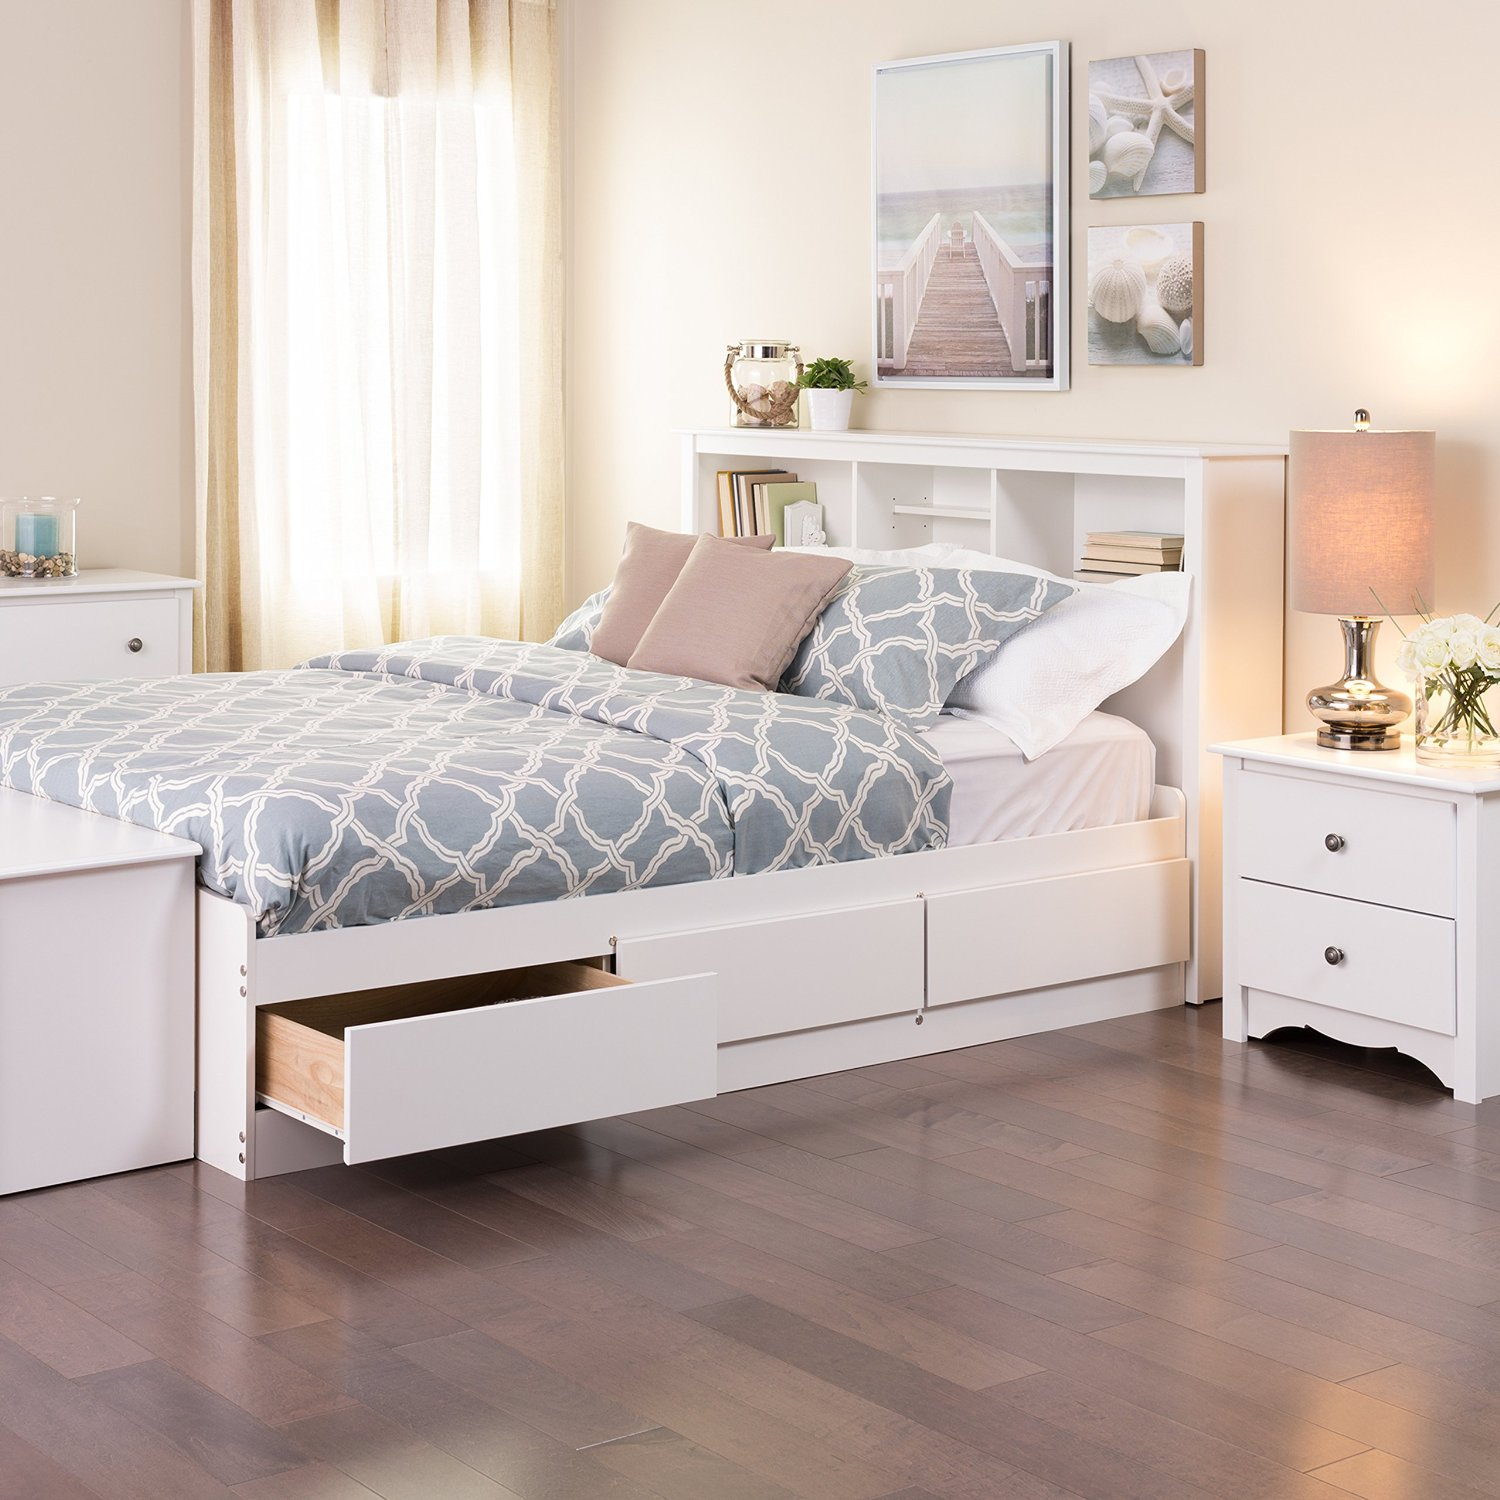 cherry with plus king beds bedding patterned drawers storage gorgeous design set size you drawer headboard and high queen wooden for underneath